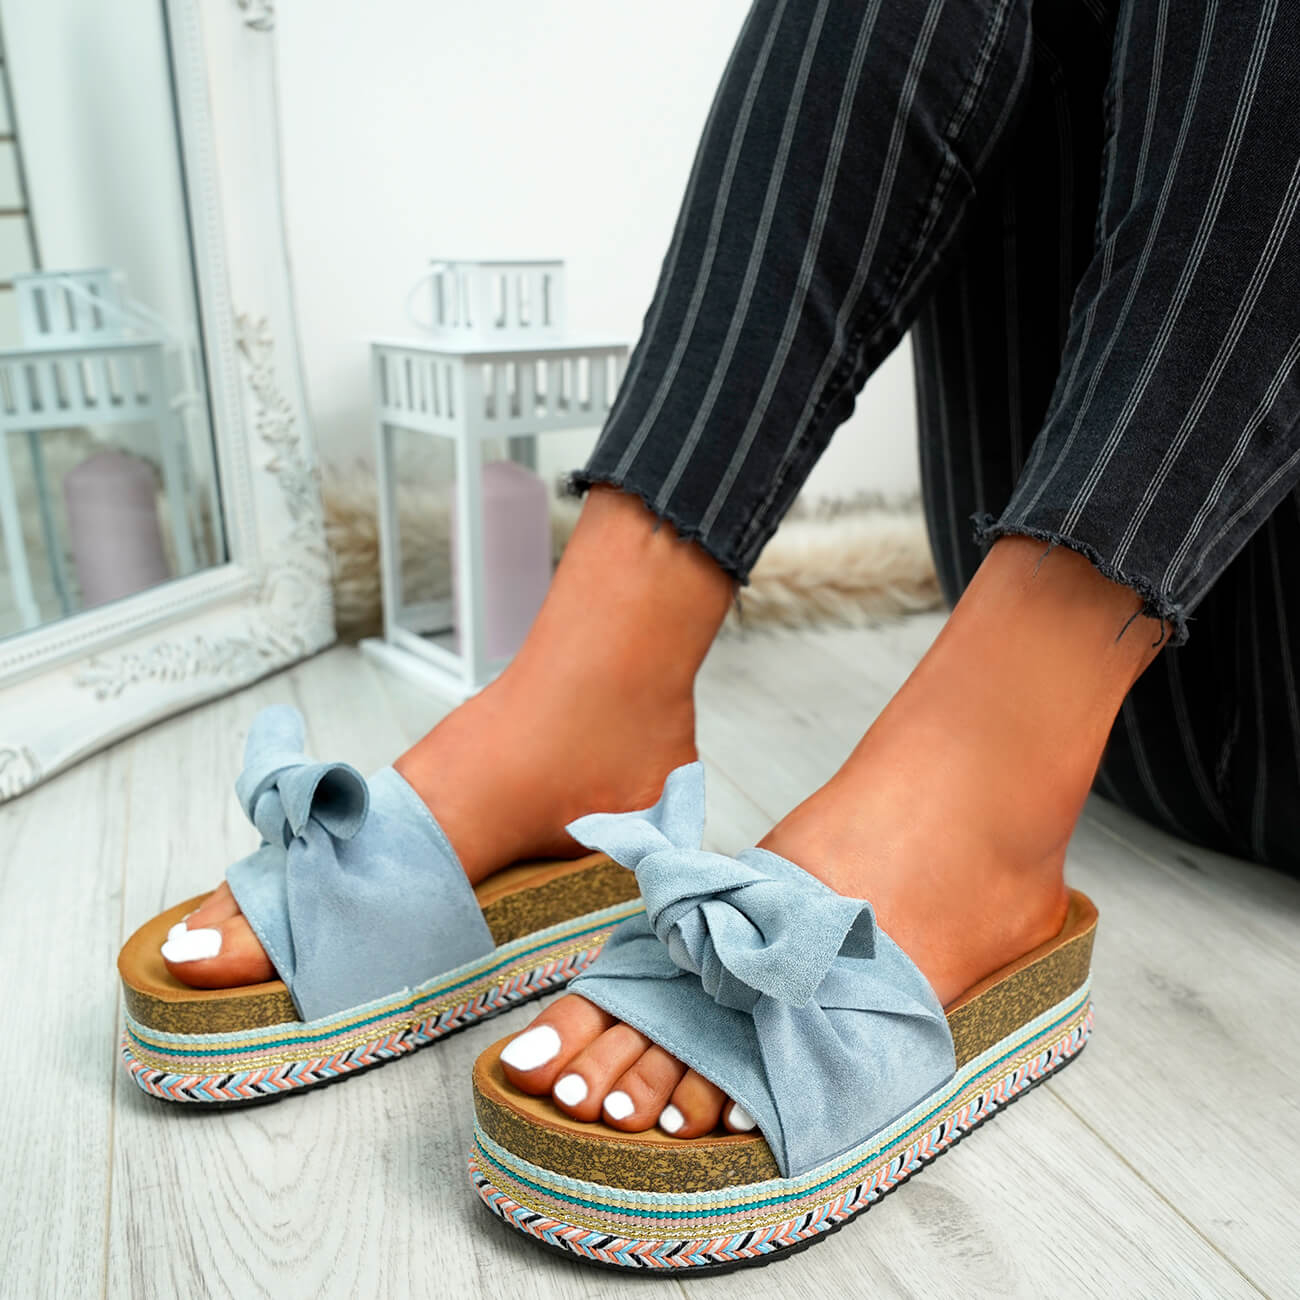 WOMENS-LADIES-BOW-SLIDERS-SLIP-ON-FLATFORMS-SUMMER-PARTY-SANDALS-SHOES-SIZE thumbnail 14